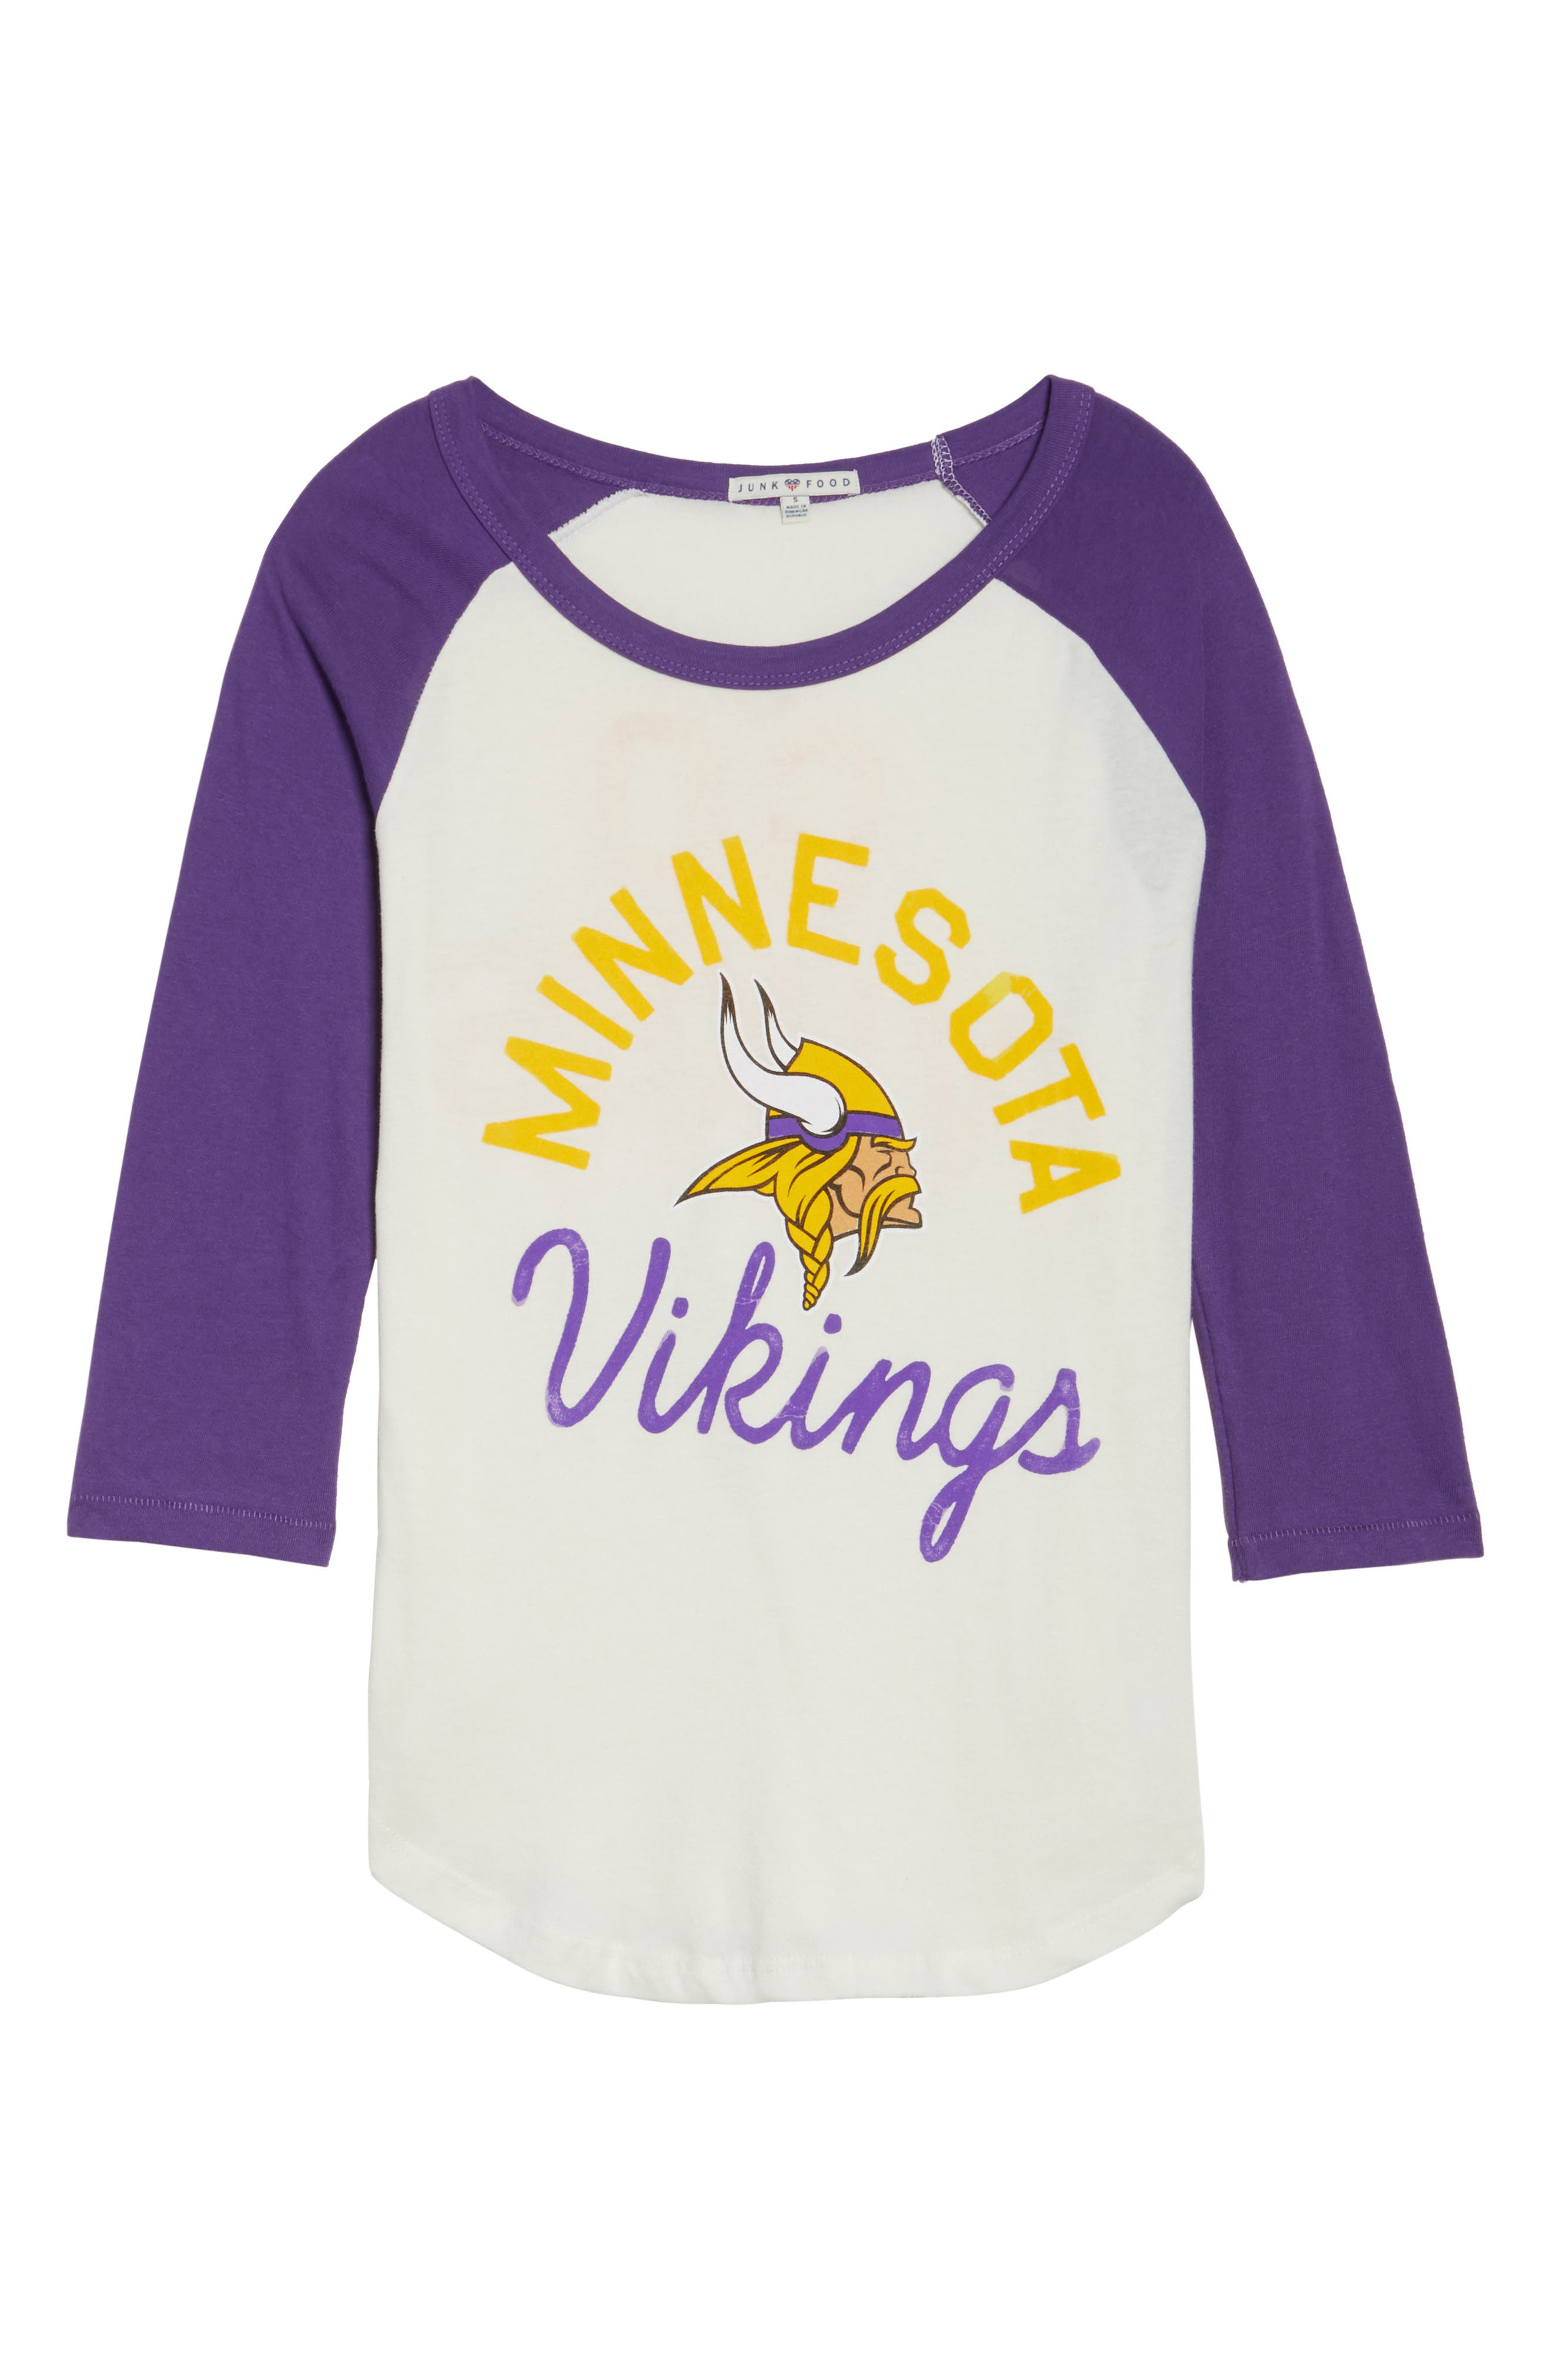 NFL Minnesota Vikings Raglan Tee,                             Alternate thumbnail 6, color,                             189